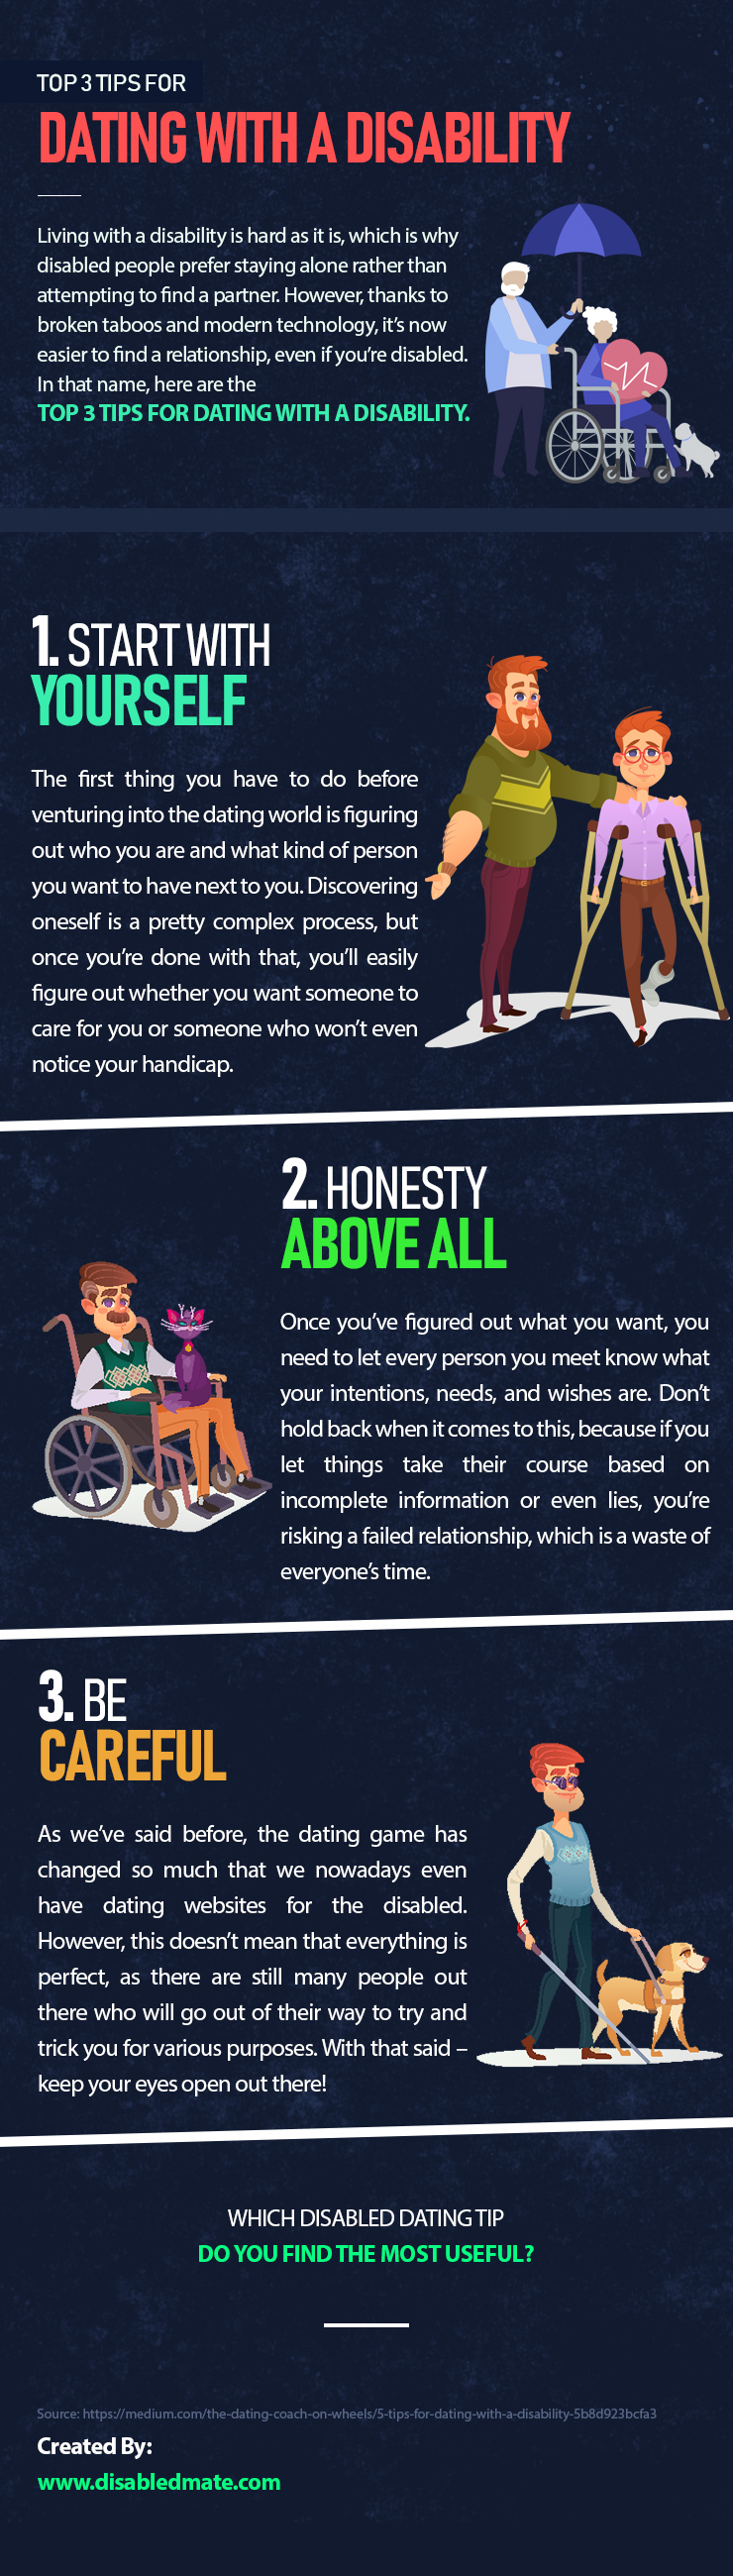 Top 3 Tips for Dating with a Disability